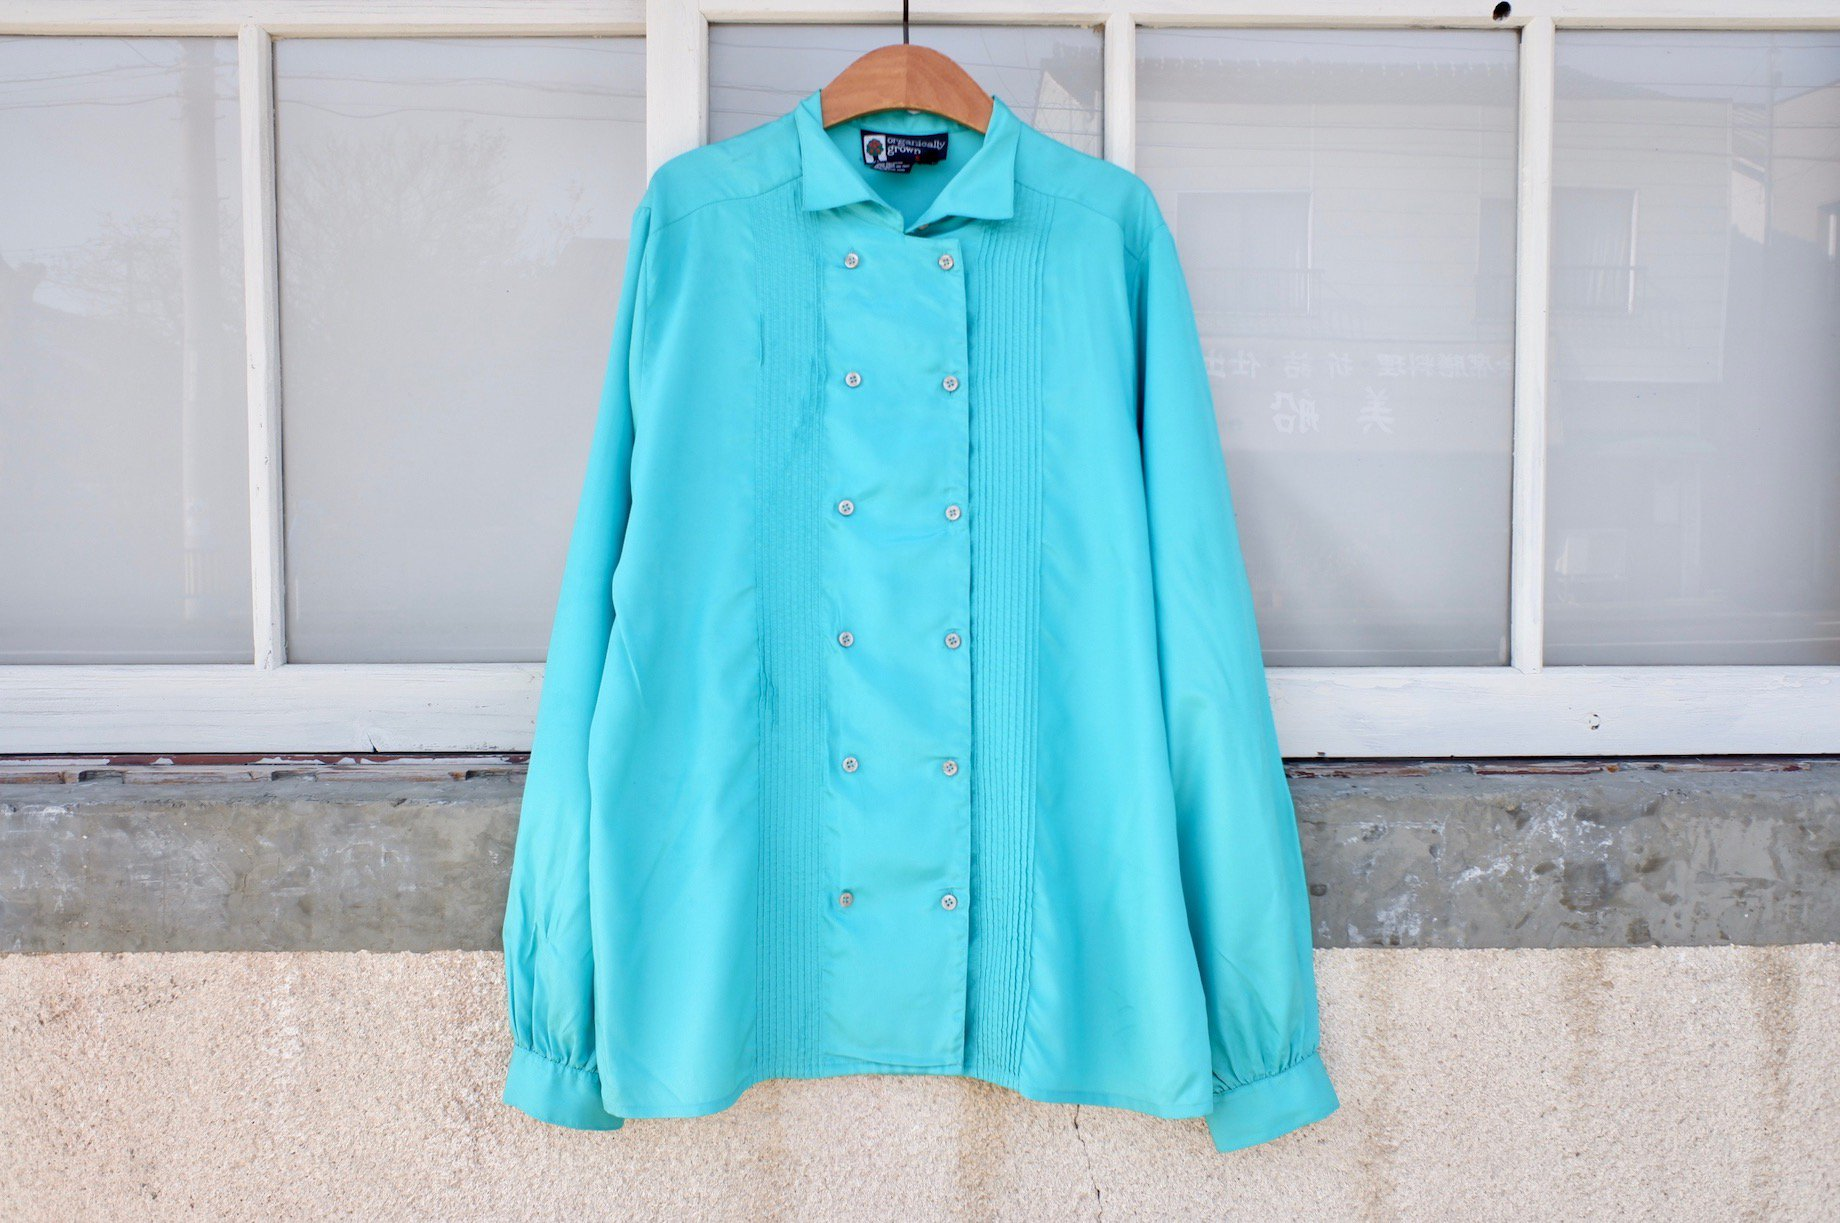 <img class='new_mark_img1' src='//img.shop-pro.jp/img/new/icons13.gif' style='border:none;display:inline;margin:0px;padding:0px;width:auto;' />discover on the cutting board blouse